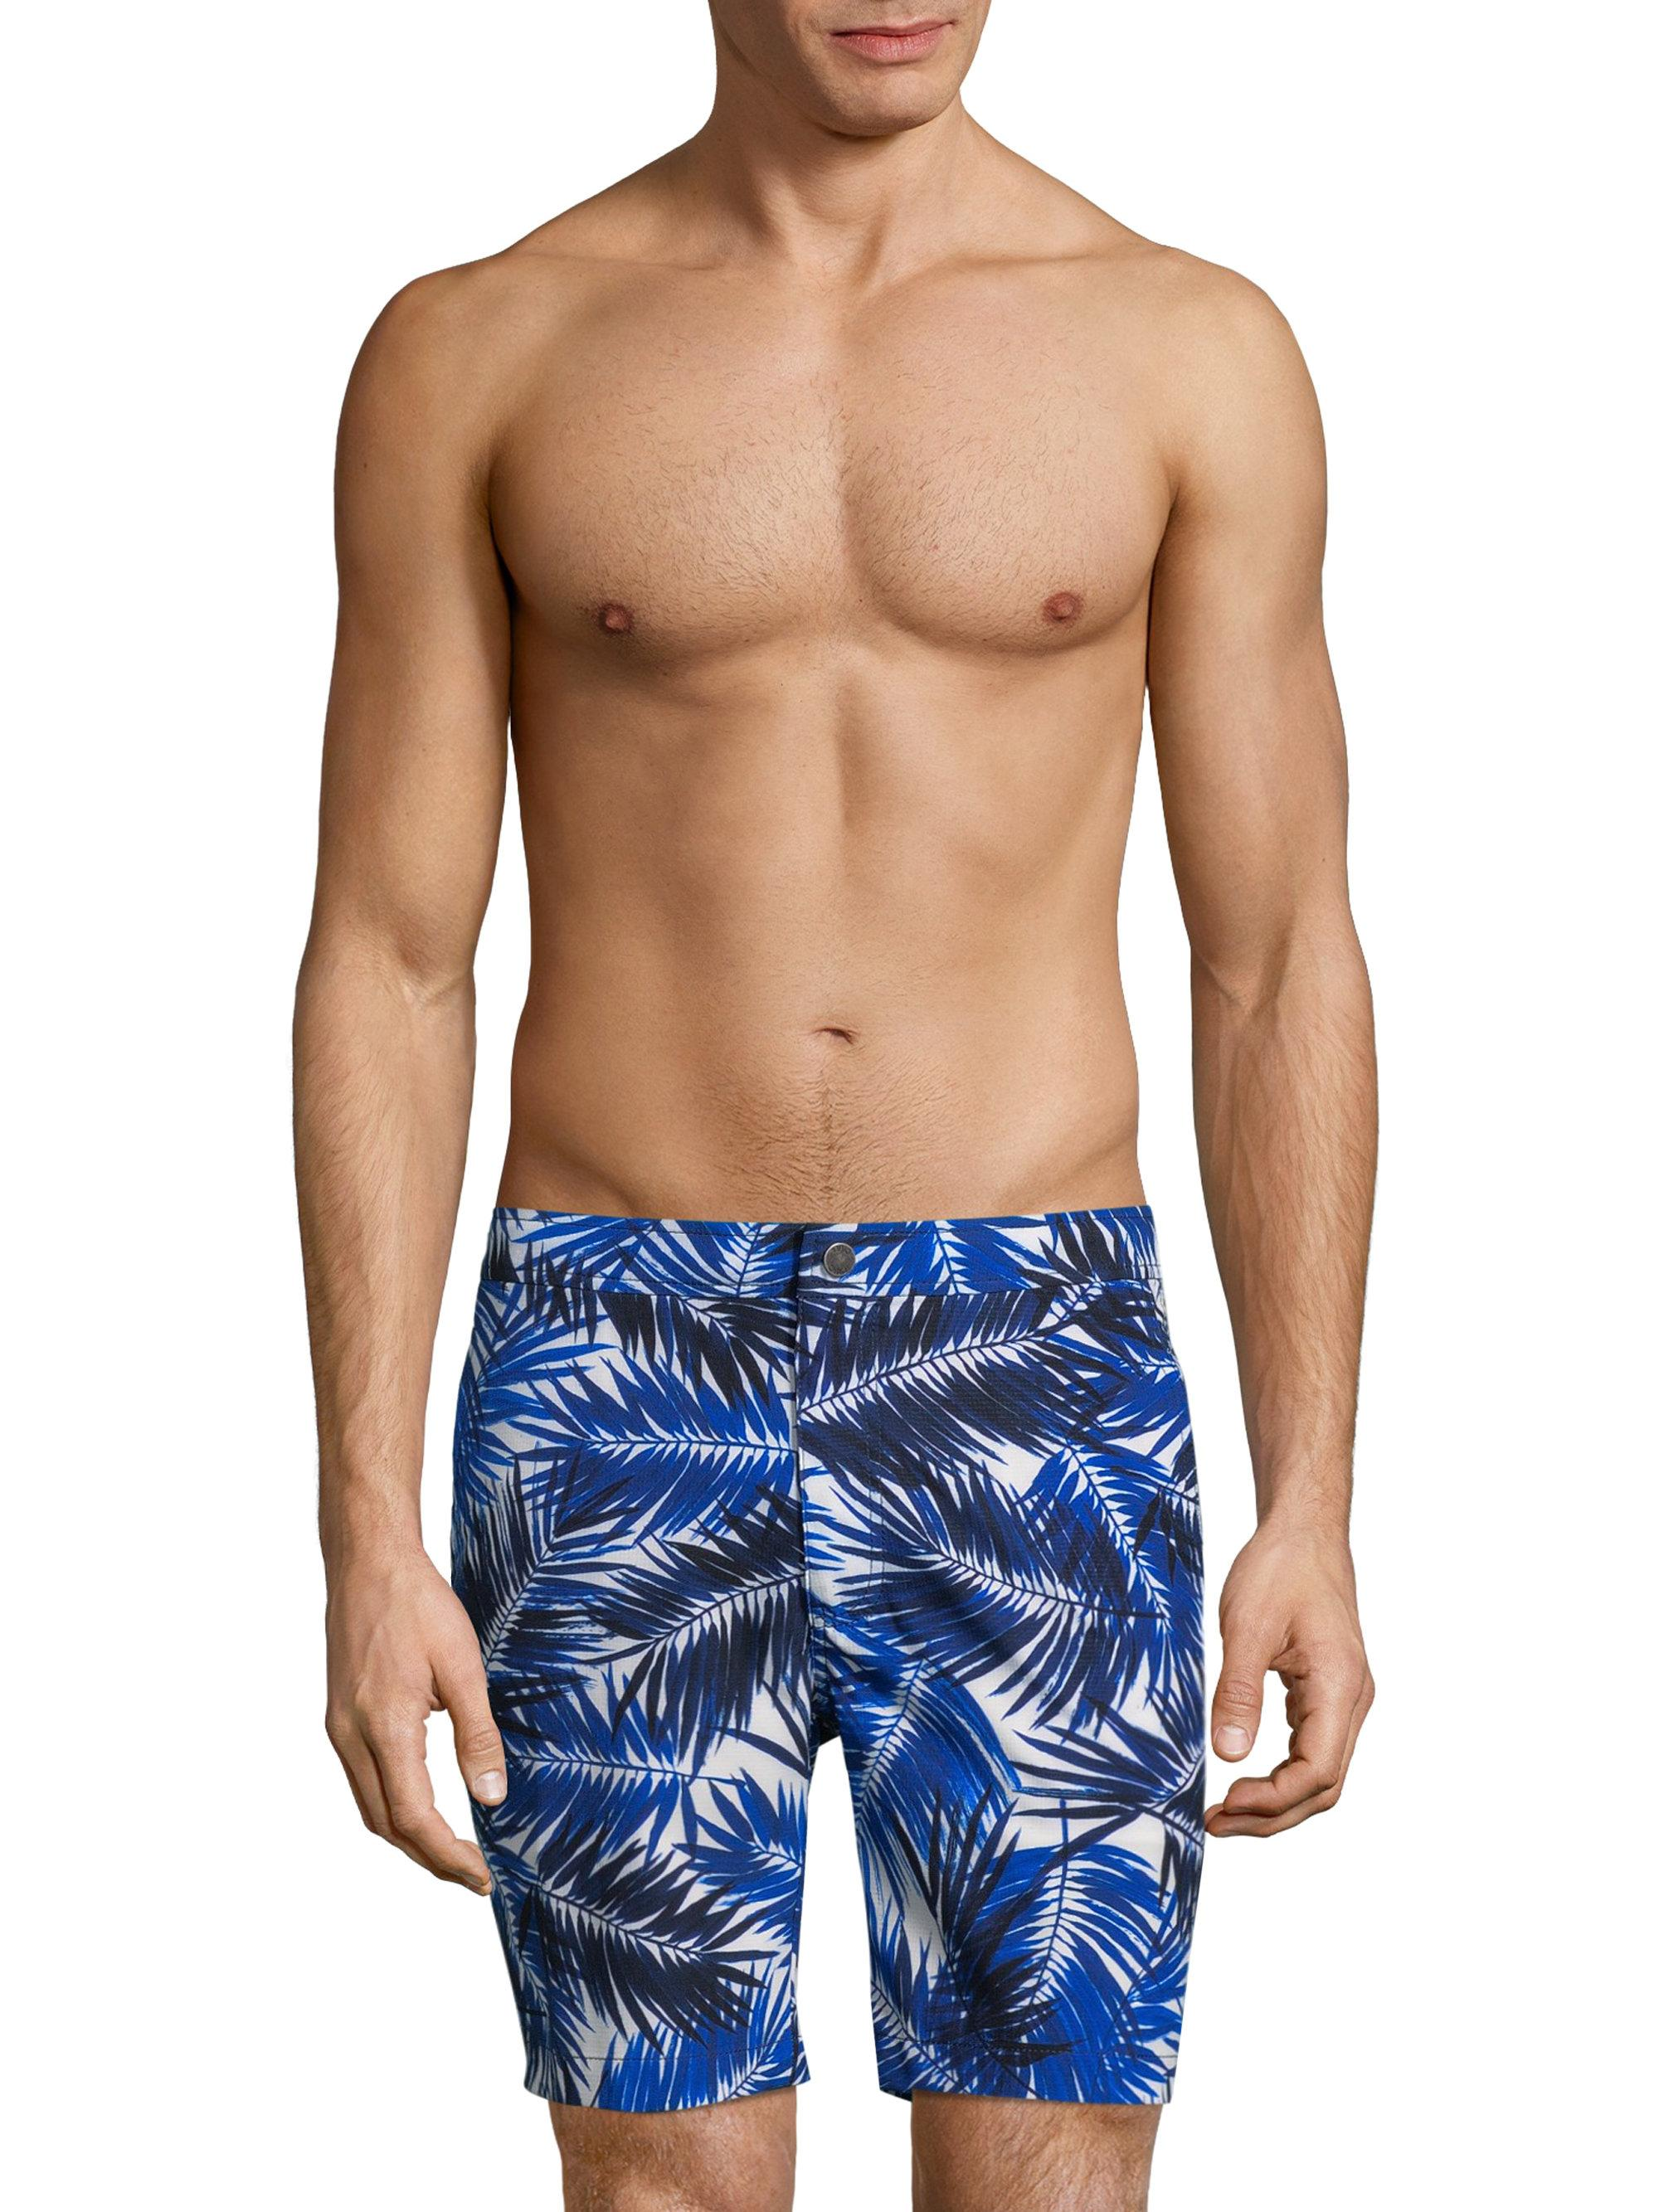 Mens Calder Palm-Print Swim Trunks Onia Buy For Sale Sale Visit Hot Sale Sale Online Top-Rated Cheap 2018 bu7KKeij